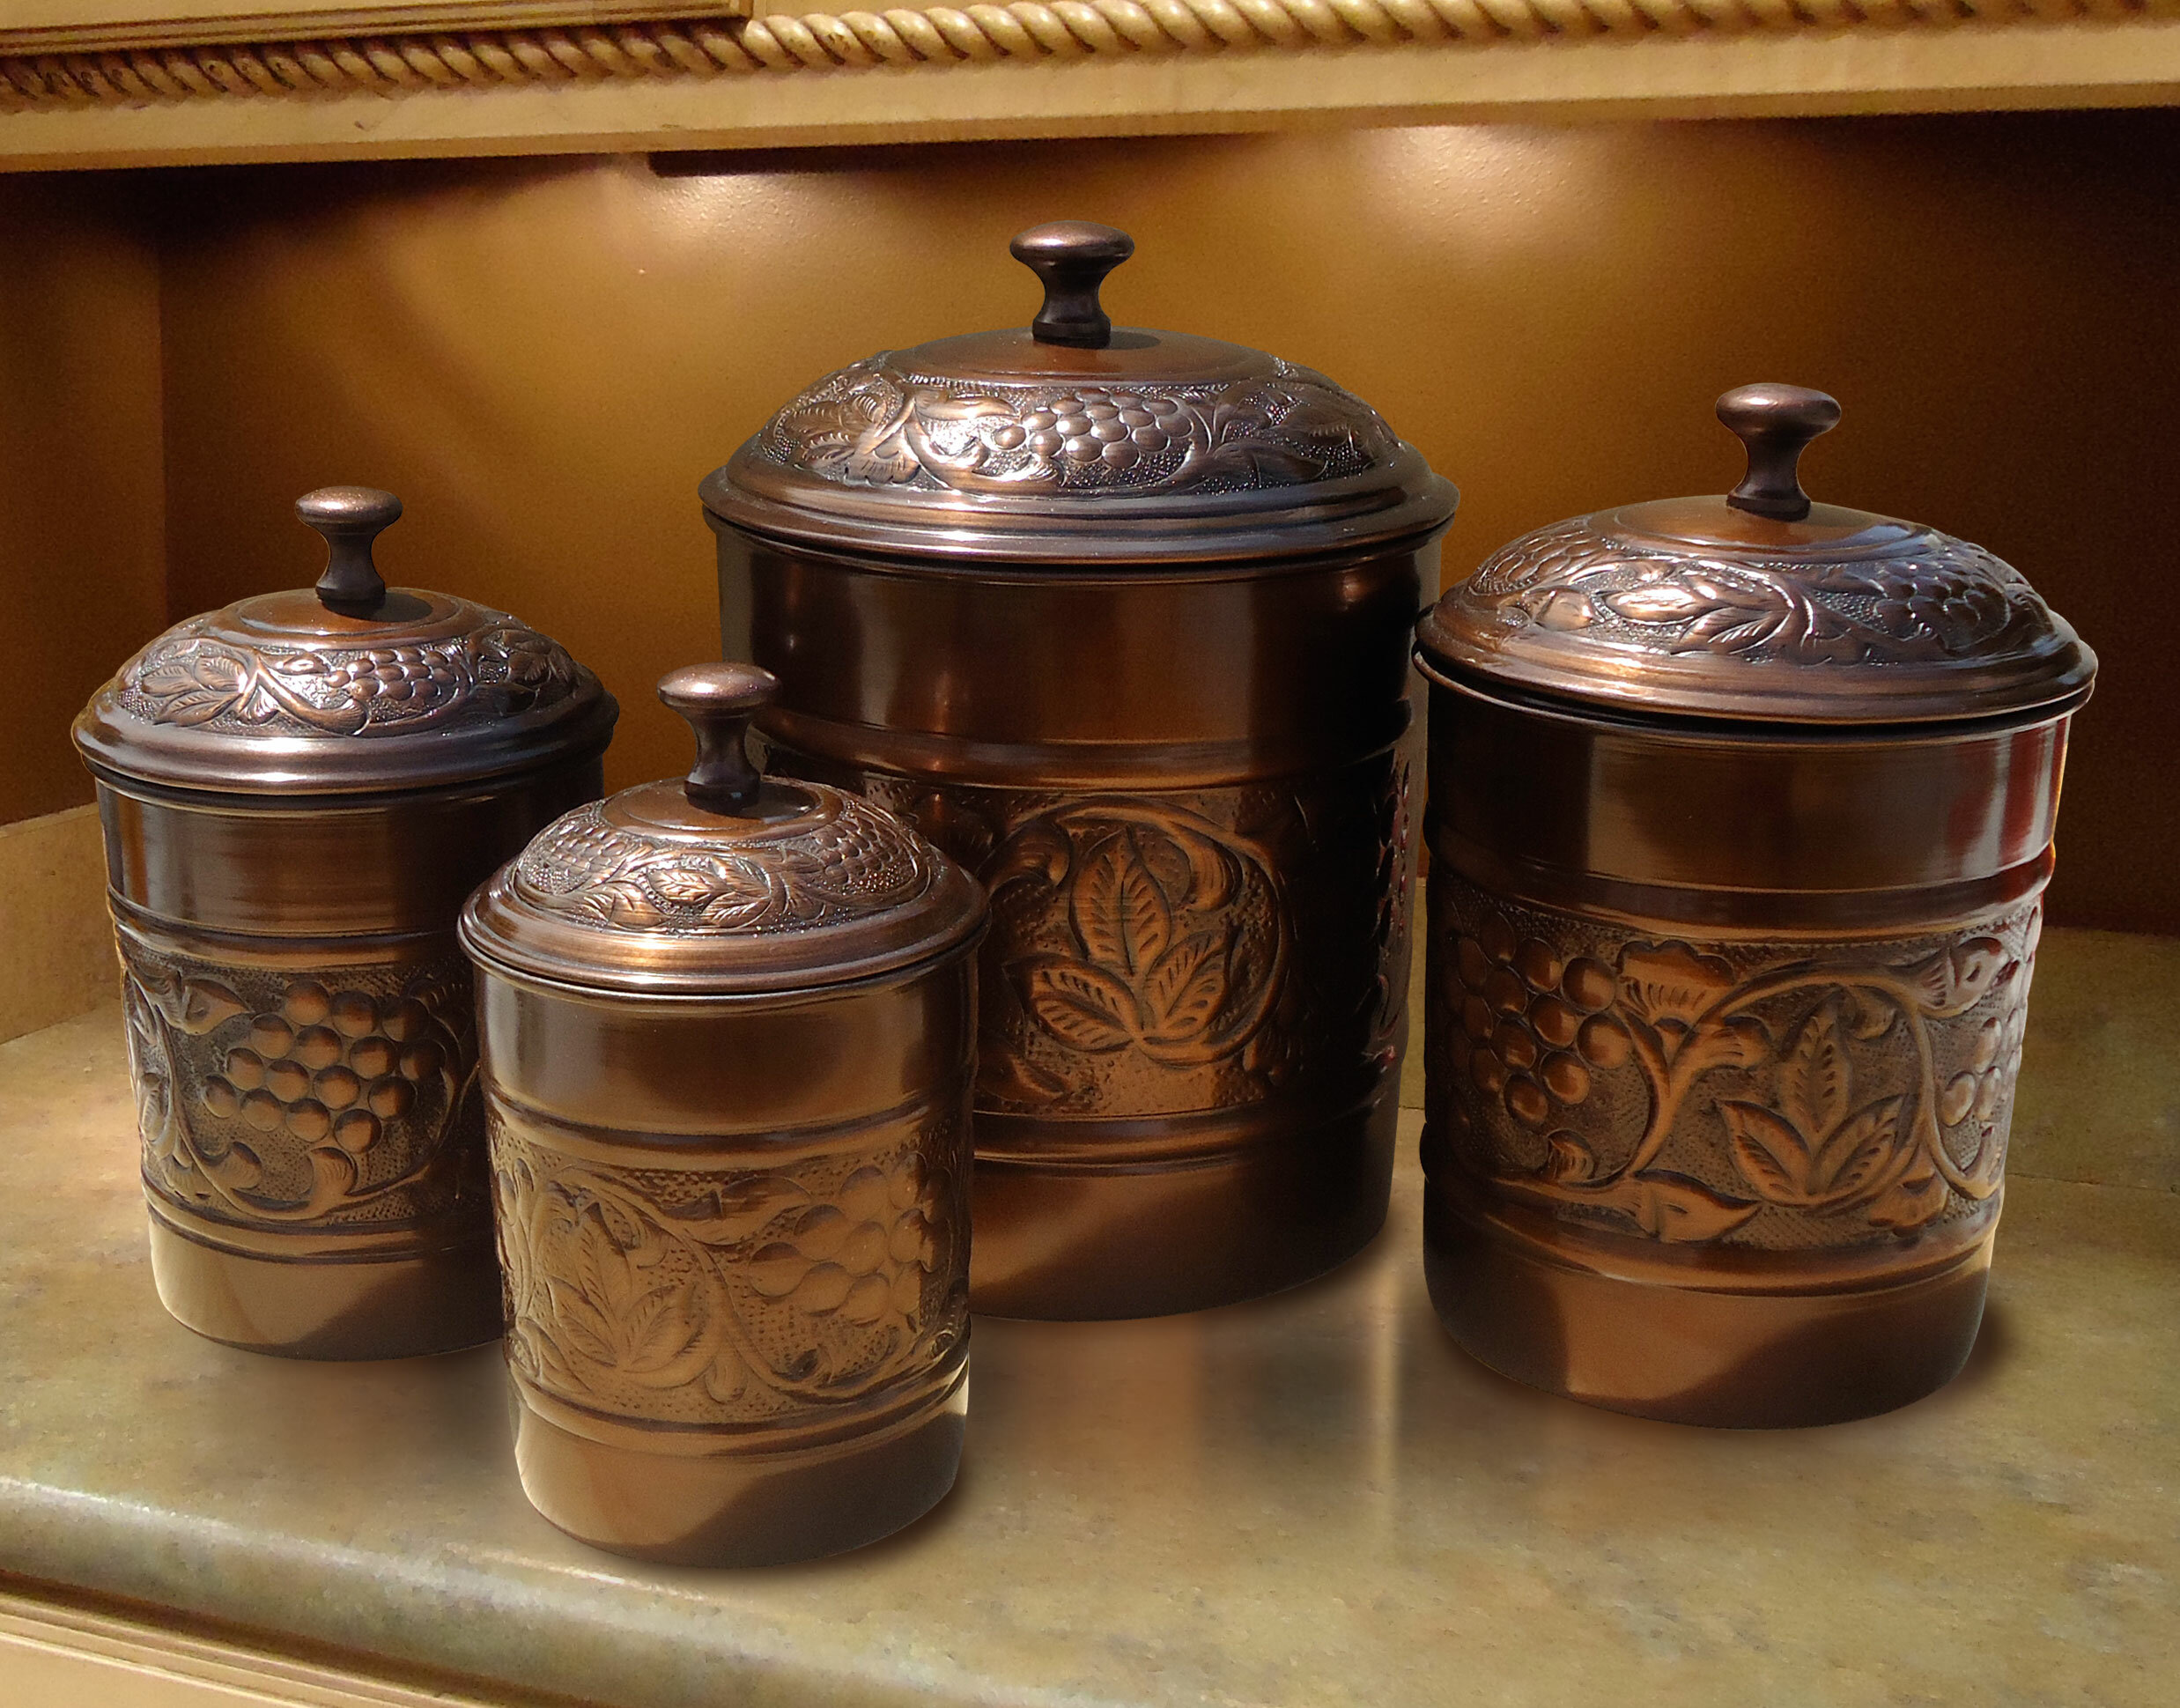 Strange Farmhouse Rustic Kitchen Canisters Jars Birch Lane Home Interior And Landscaping Ologienasavecom